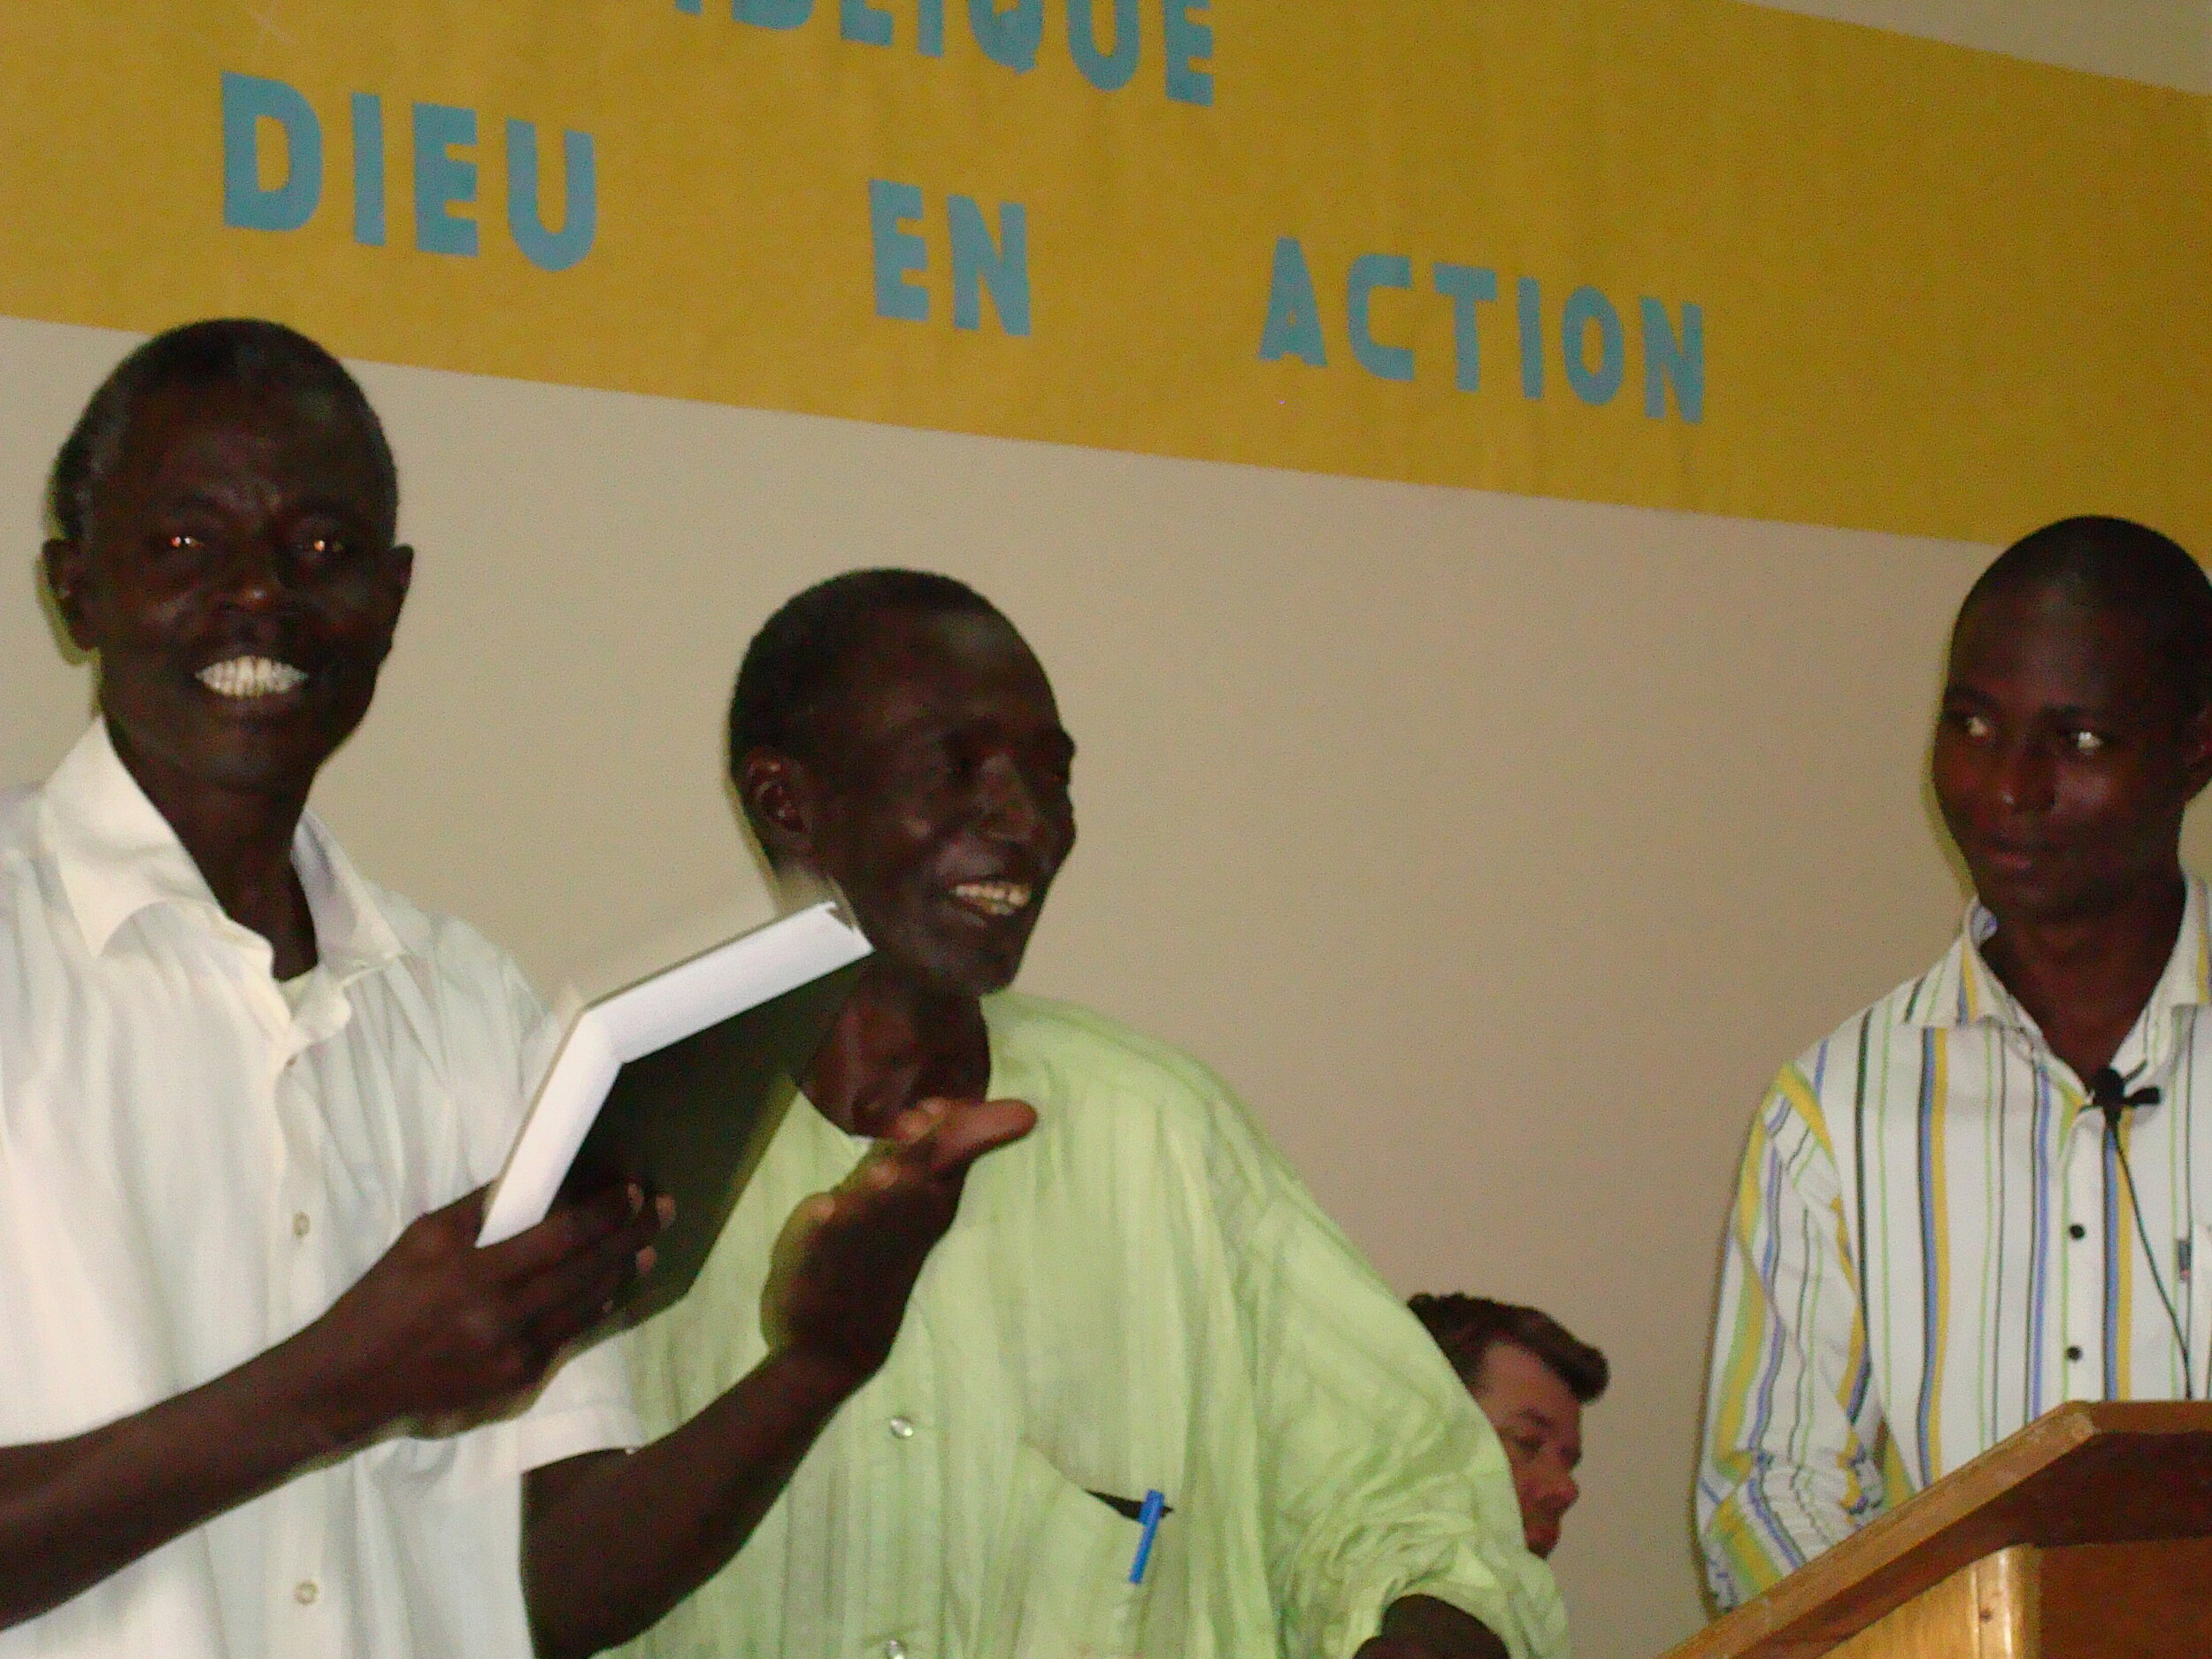 My photo: Testimonies in four languages, Bible League office, Dakar, Senegal, West Africa